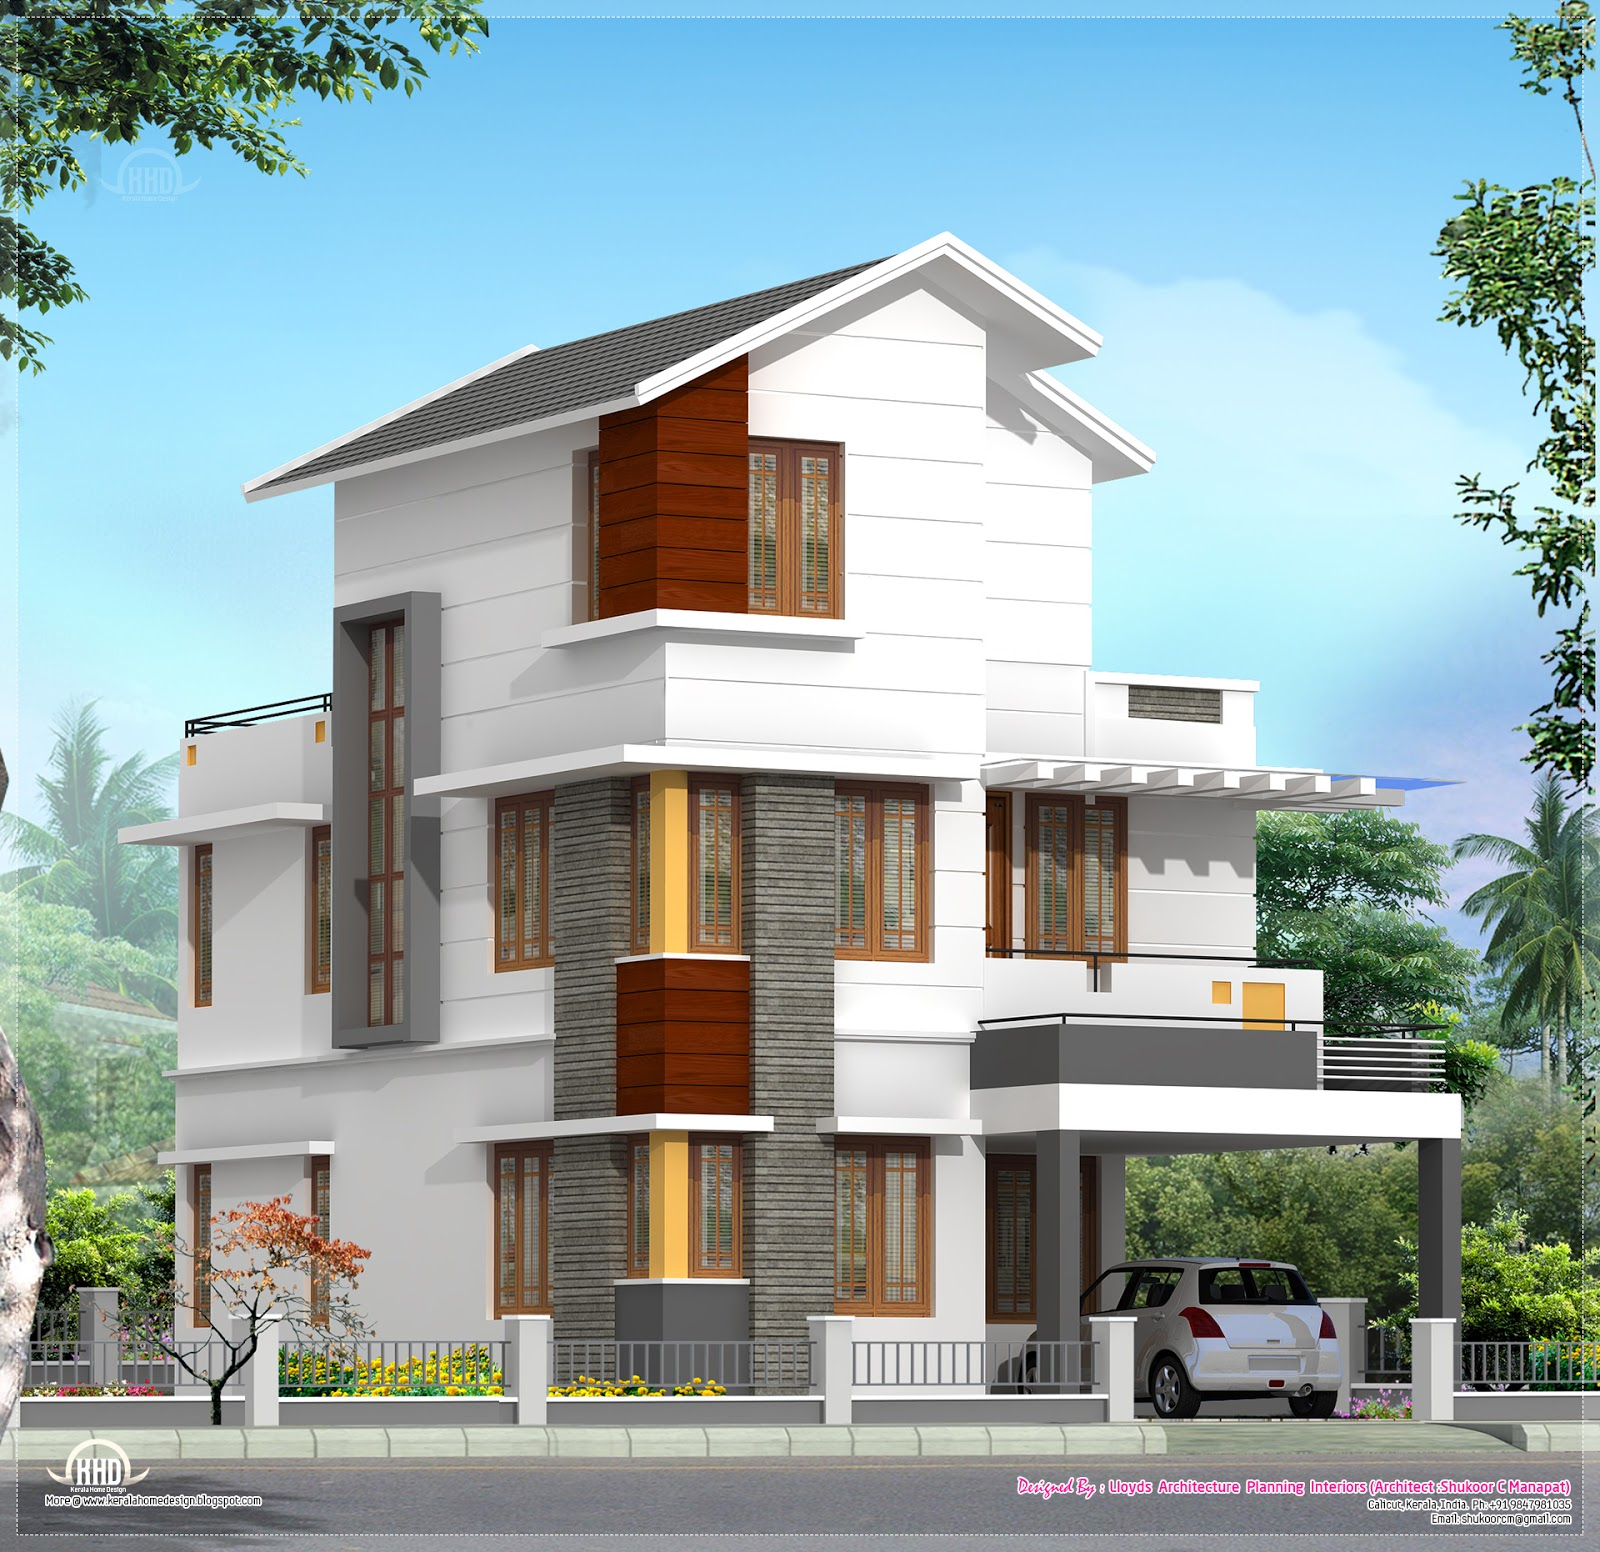 4 bedroom house plan in less than 3 cents kerala home for 4 bedroom house to build